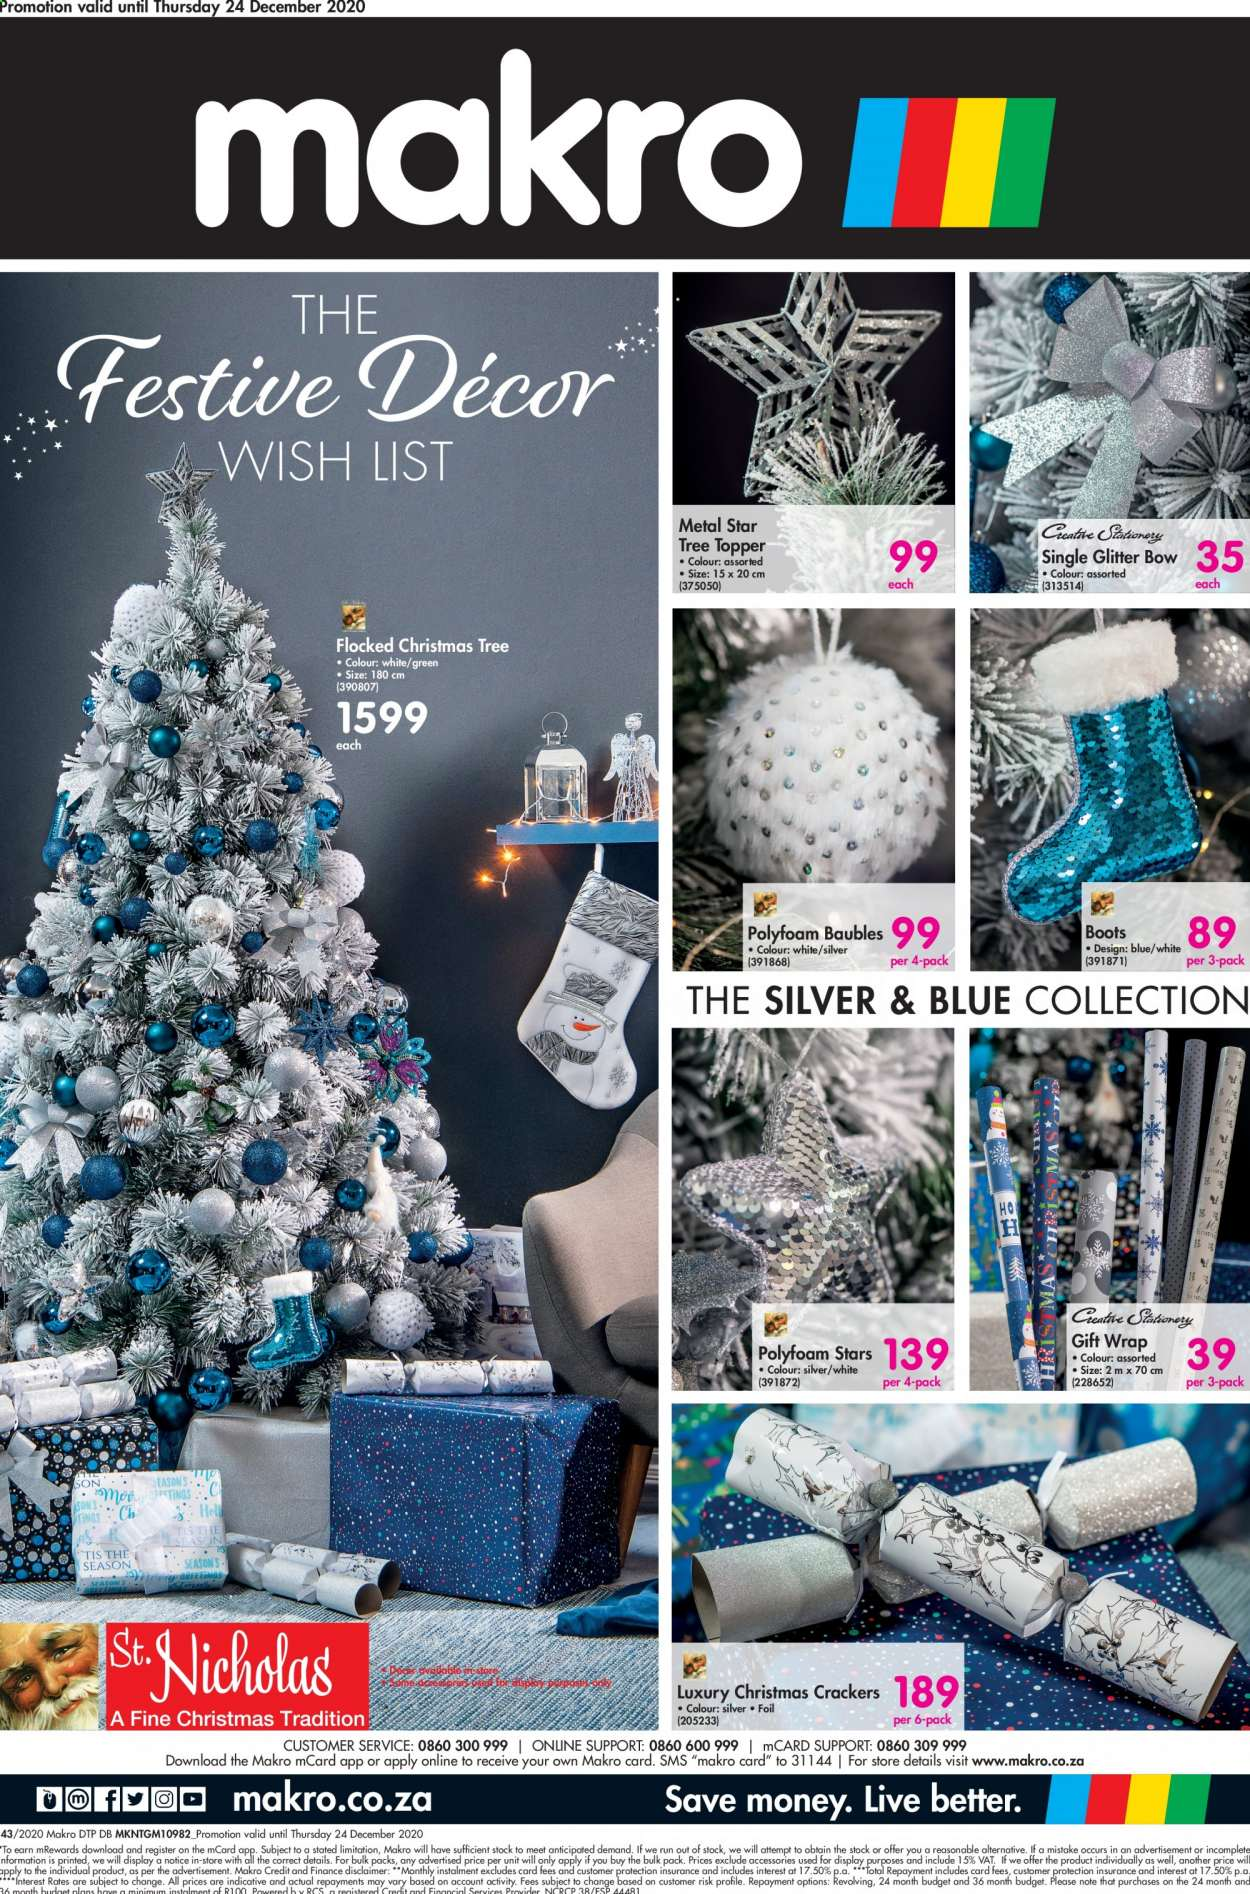 Makro catalogue  - 10.18.2020 - 12.24.2020 - Sales products - boots, crackers, glitter, topper, tree topper, wrap, christmas tree, gift wrap, bow, christmas crackers, baubles. Page 1.